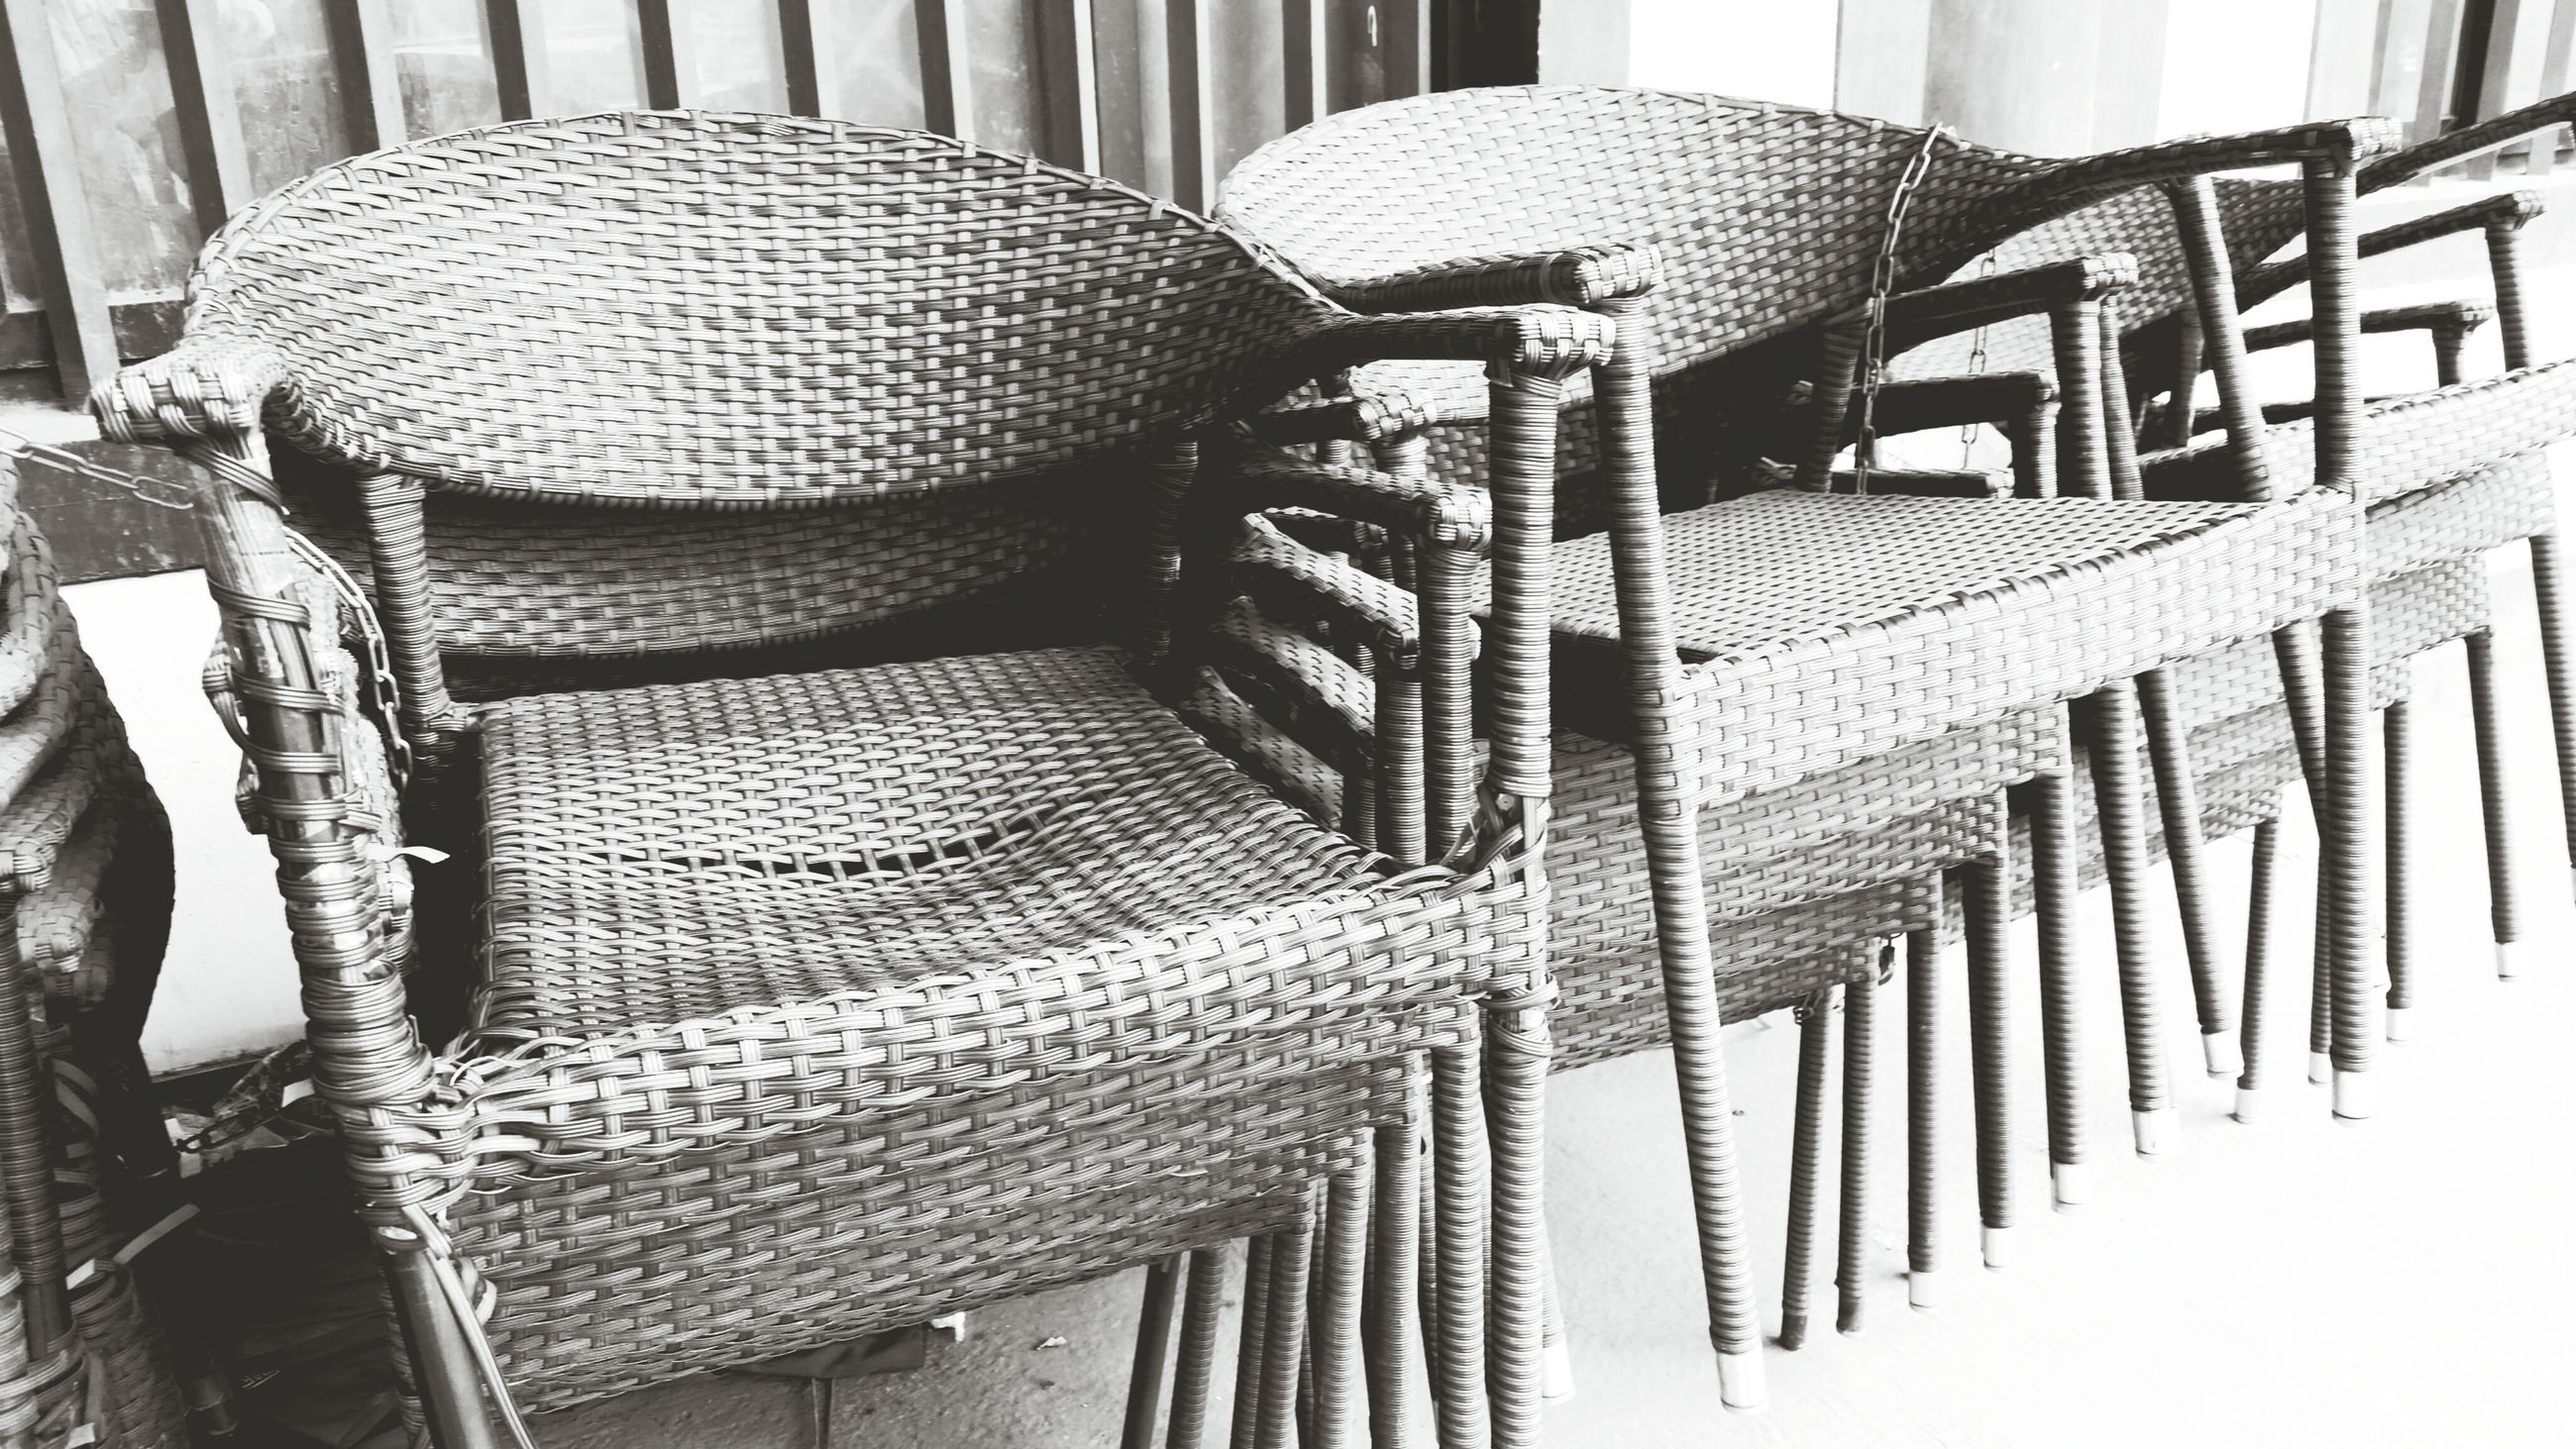 indoors, textile, close-up, pattern, fabric, chair, day, in a row, built structure, clothing, repetition, no people, home interior, bed, architecture, sunlight, railing, hanging, curtain